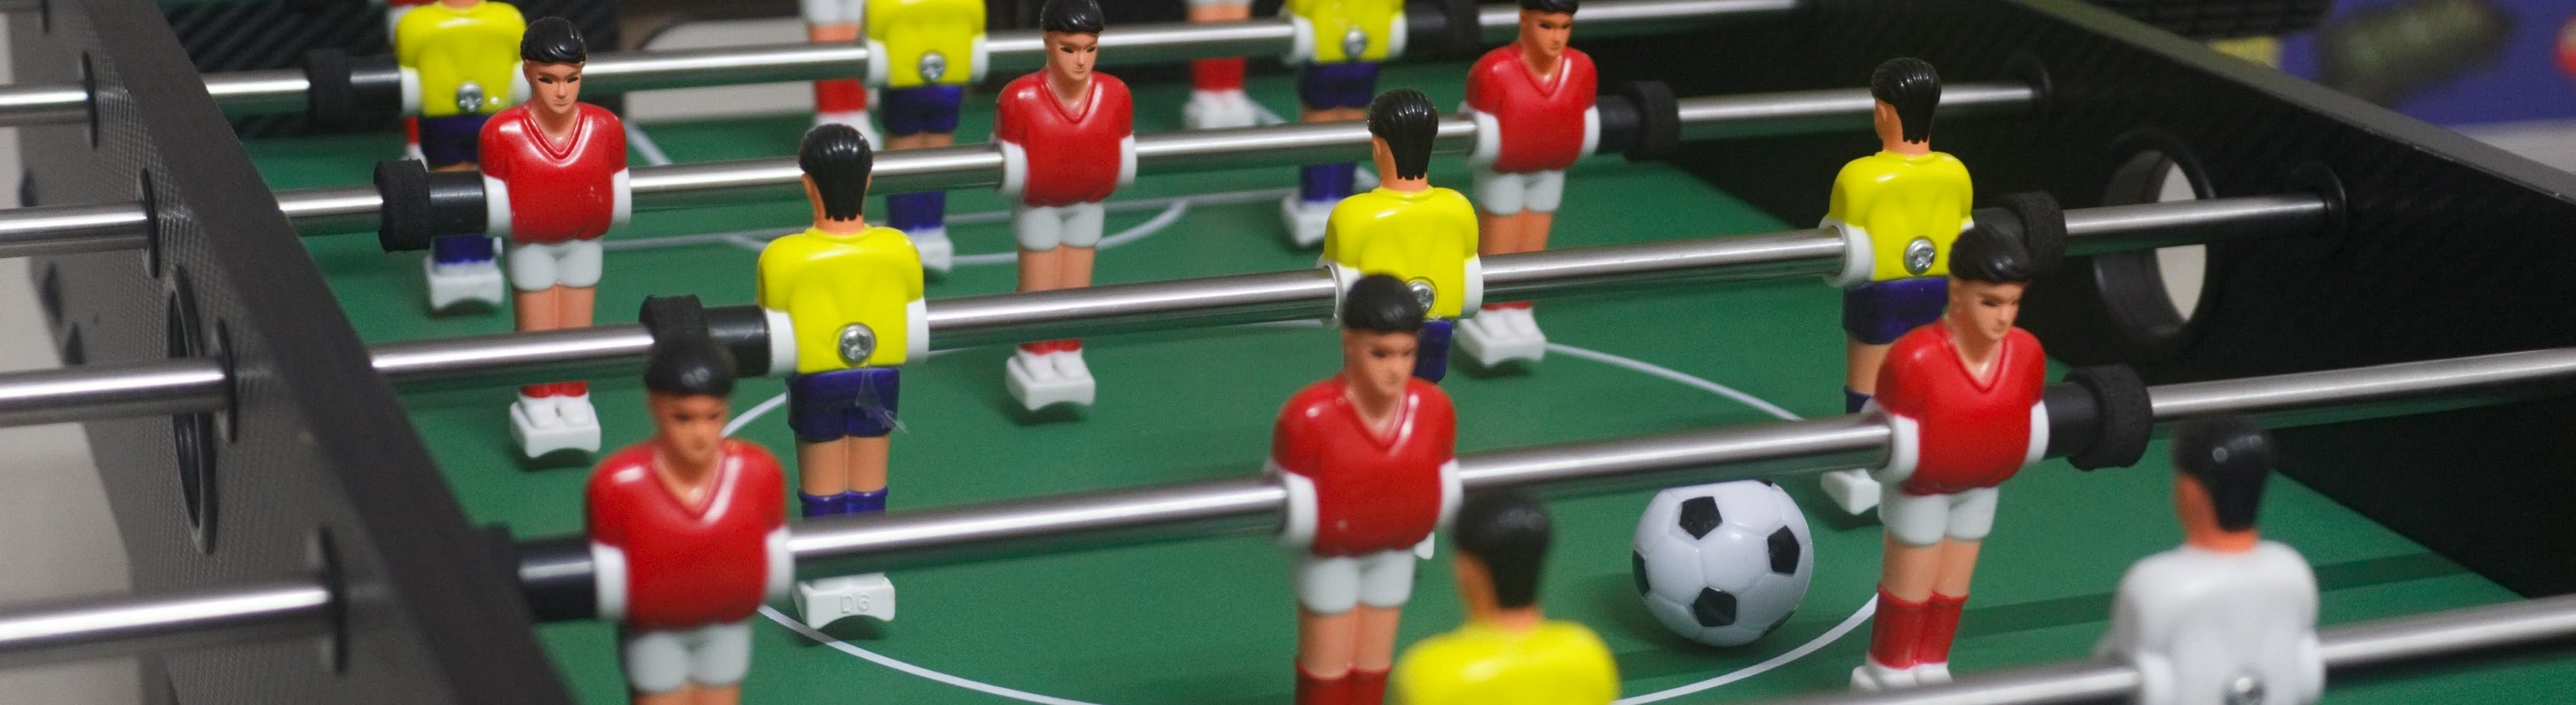 Best KICK Foosball Tables Reviewed in Detail